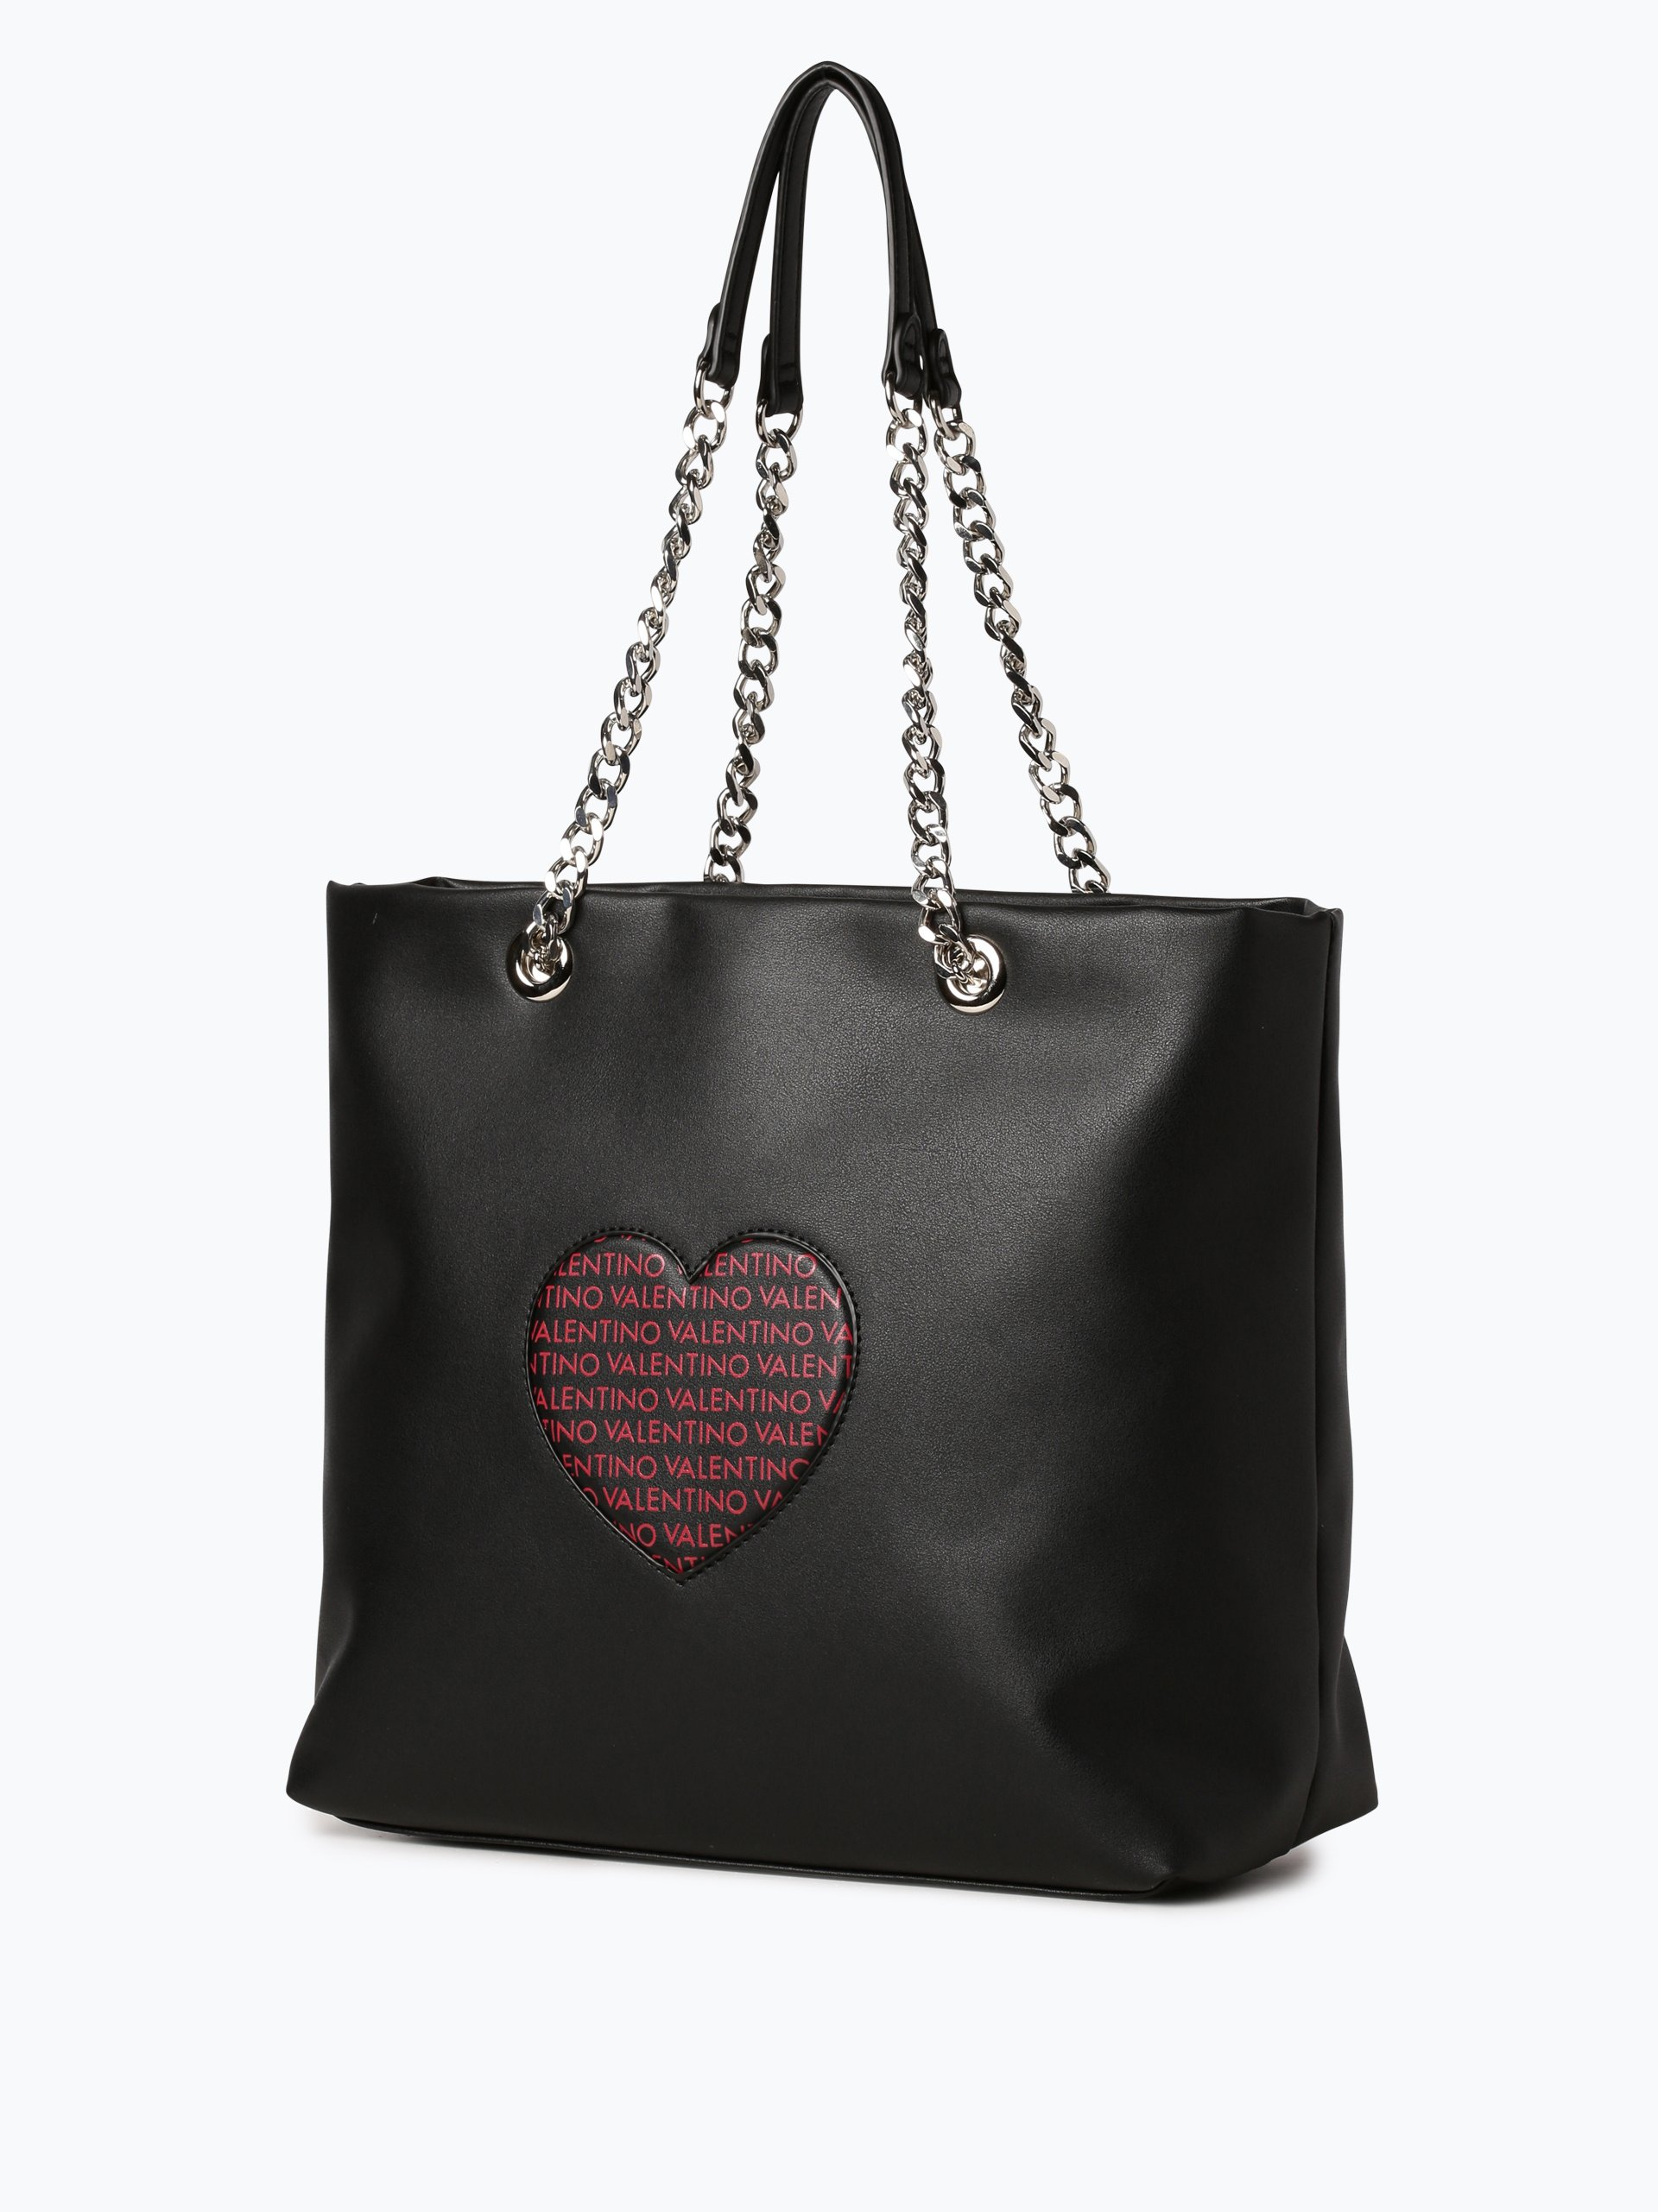 Damen Shopper Valentino Tasche Rot Shopper The Art Of Mike Mignola